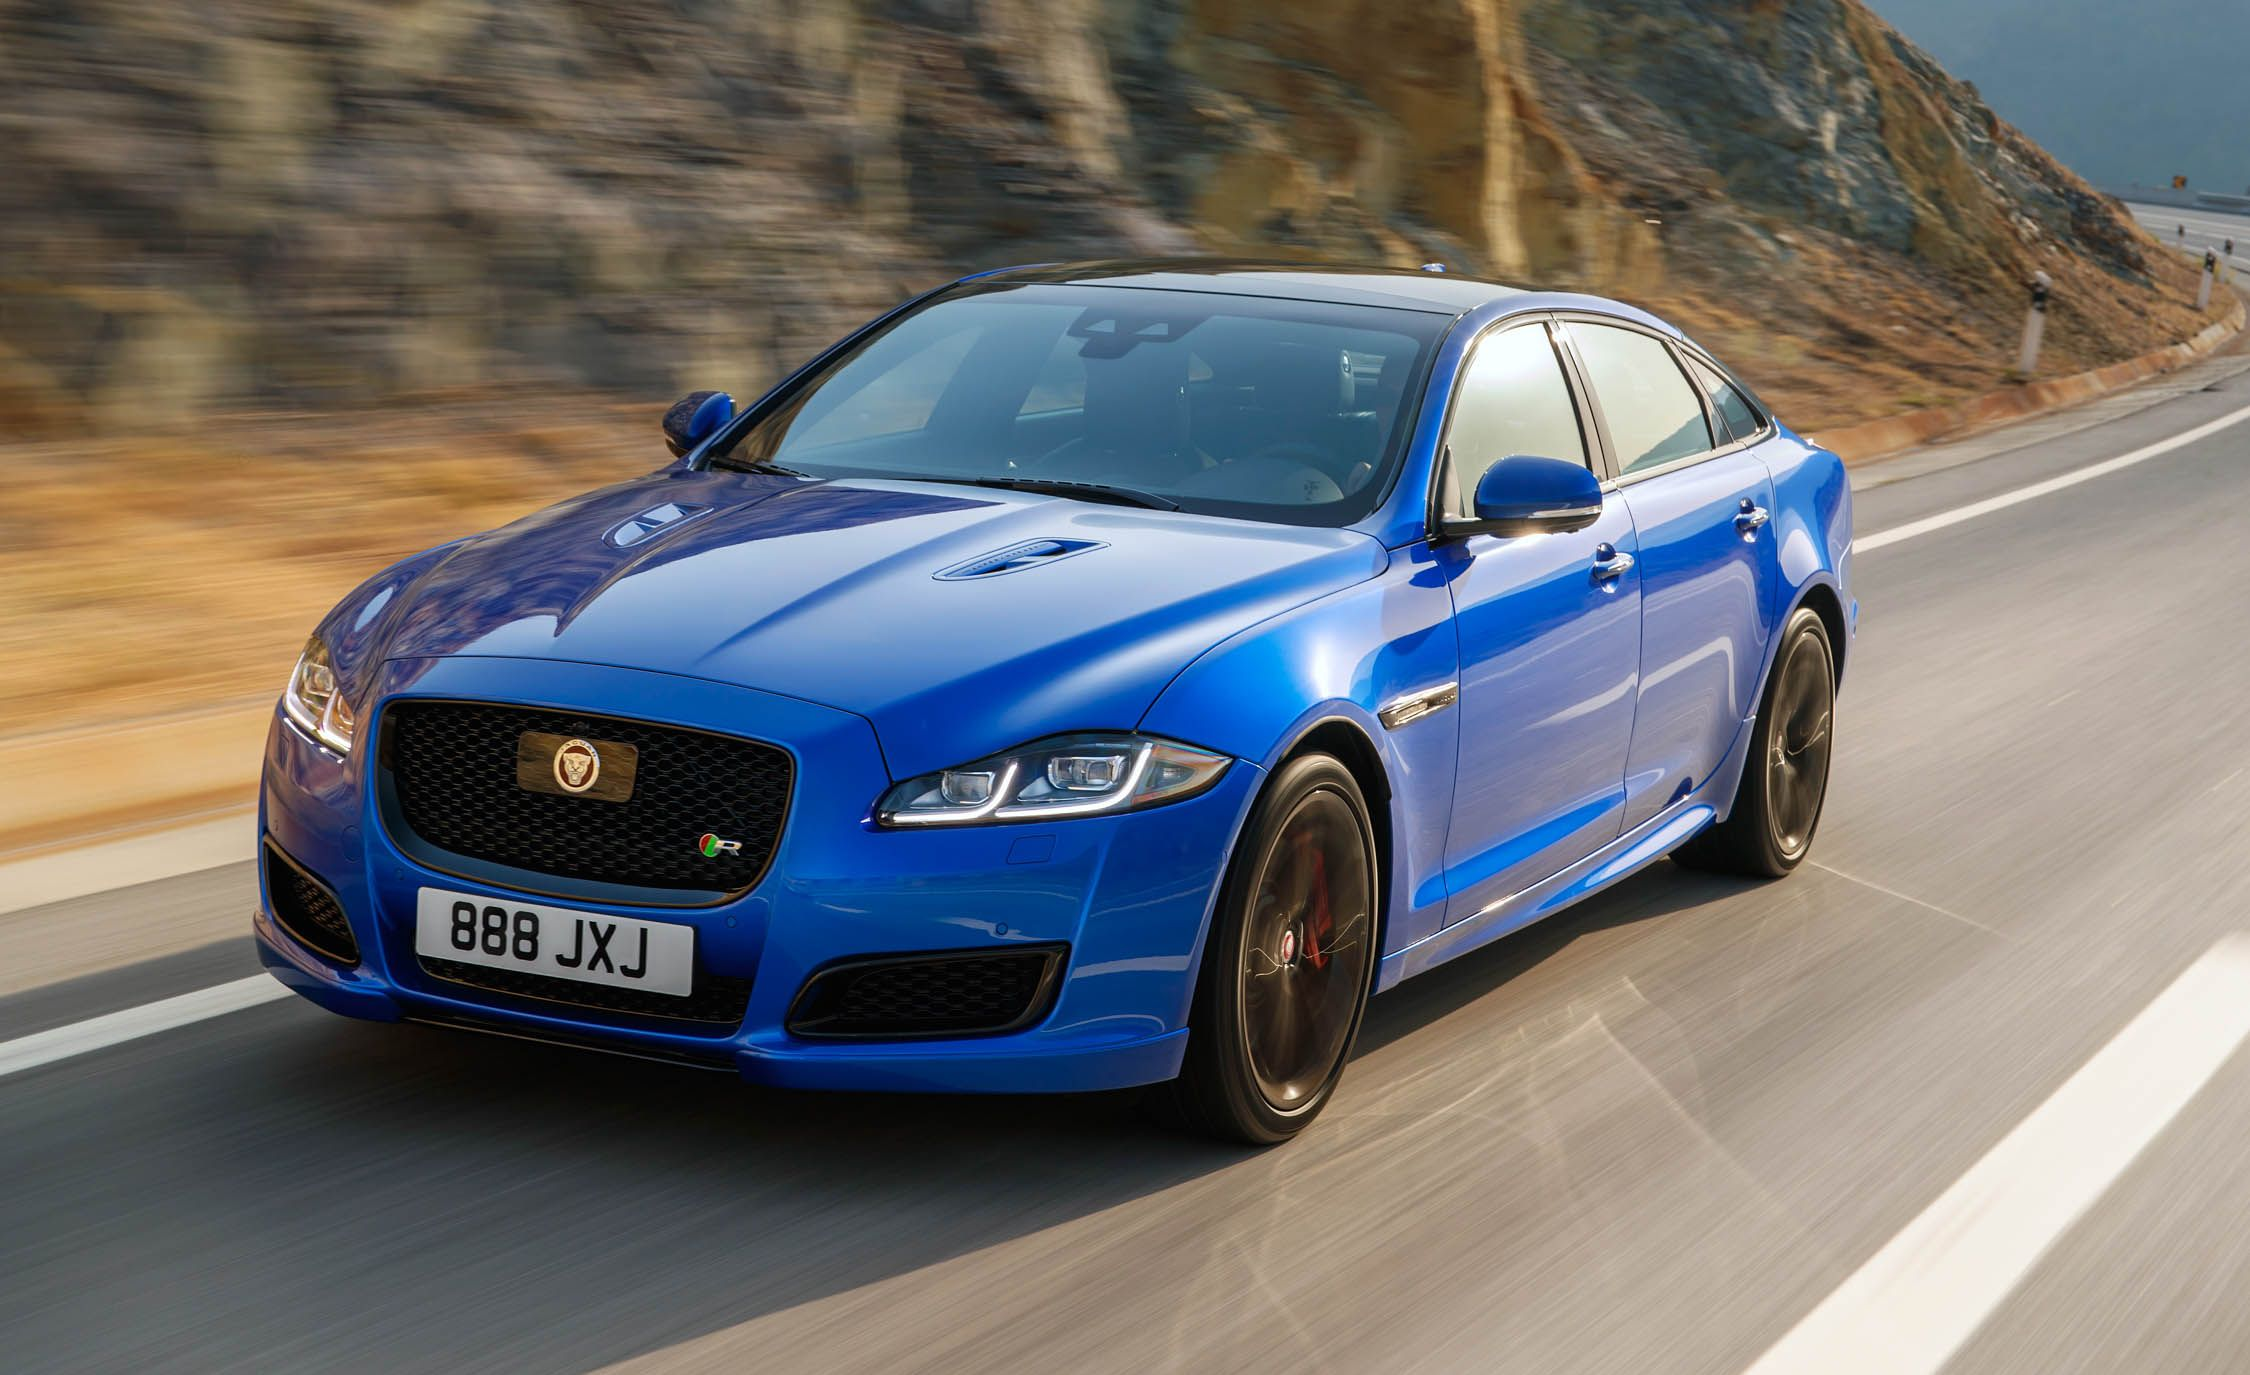 cargurus xjr jaguar sale overview supercharged sedan used for dr cars pic